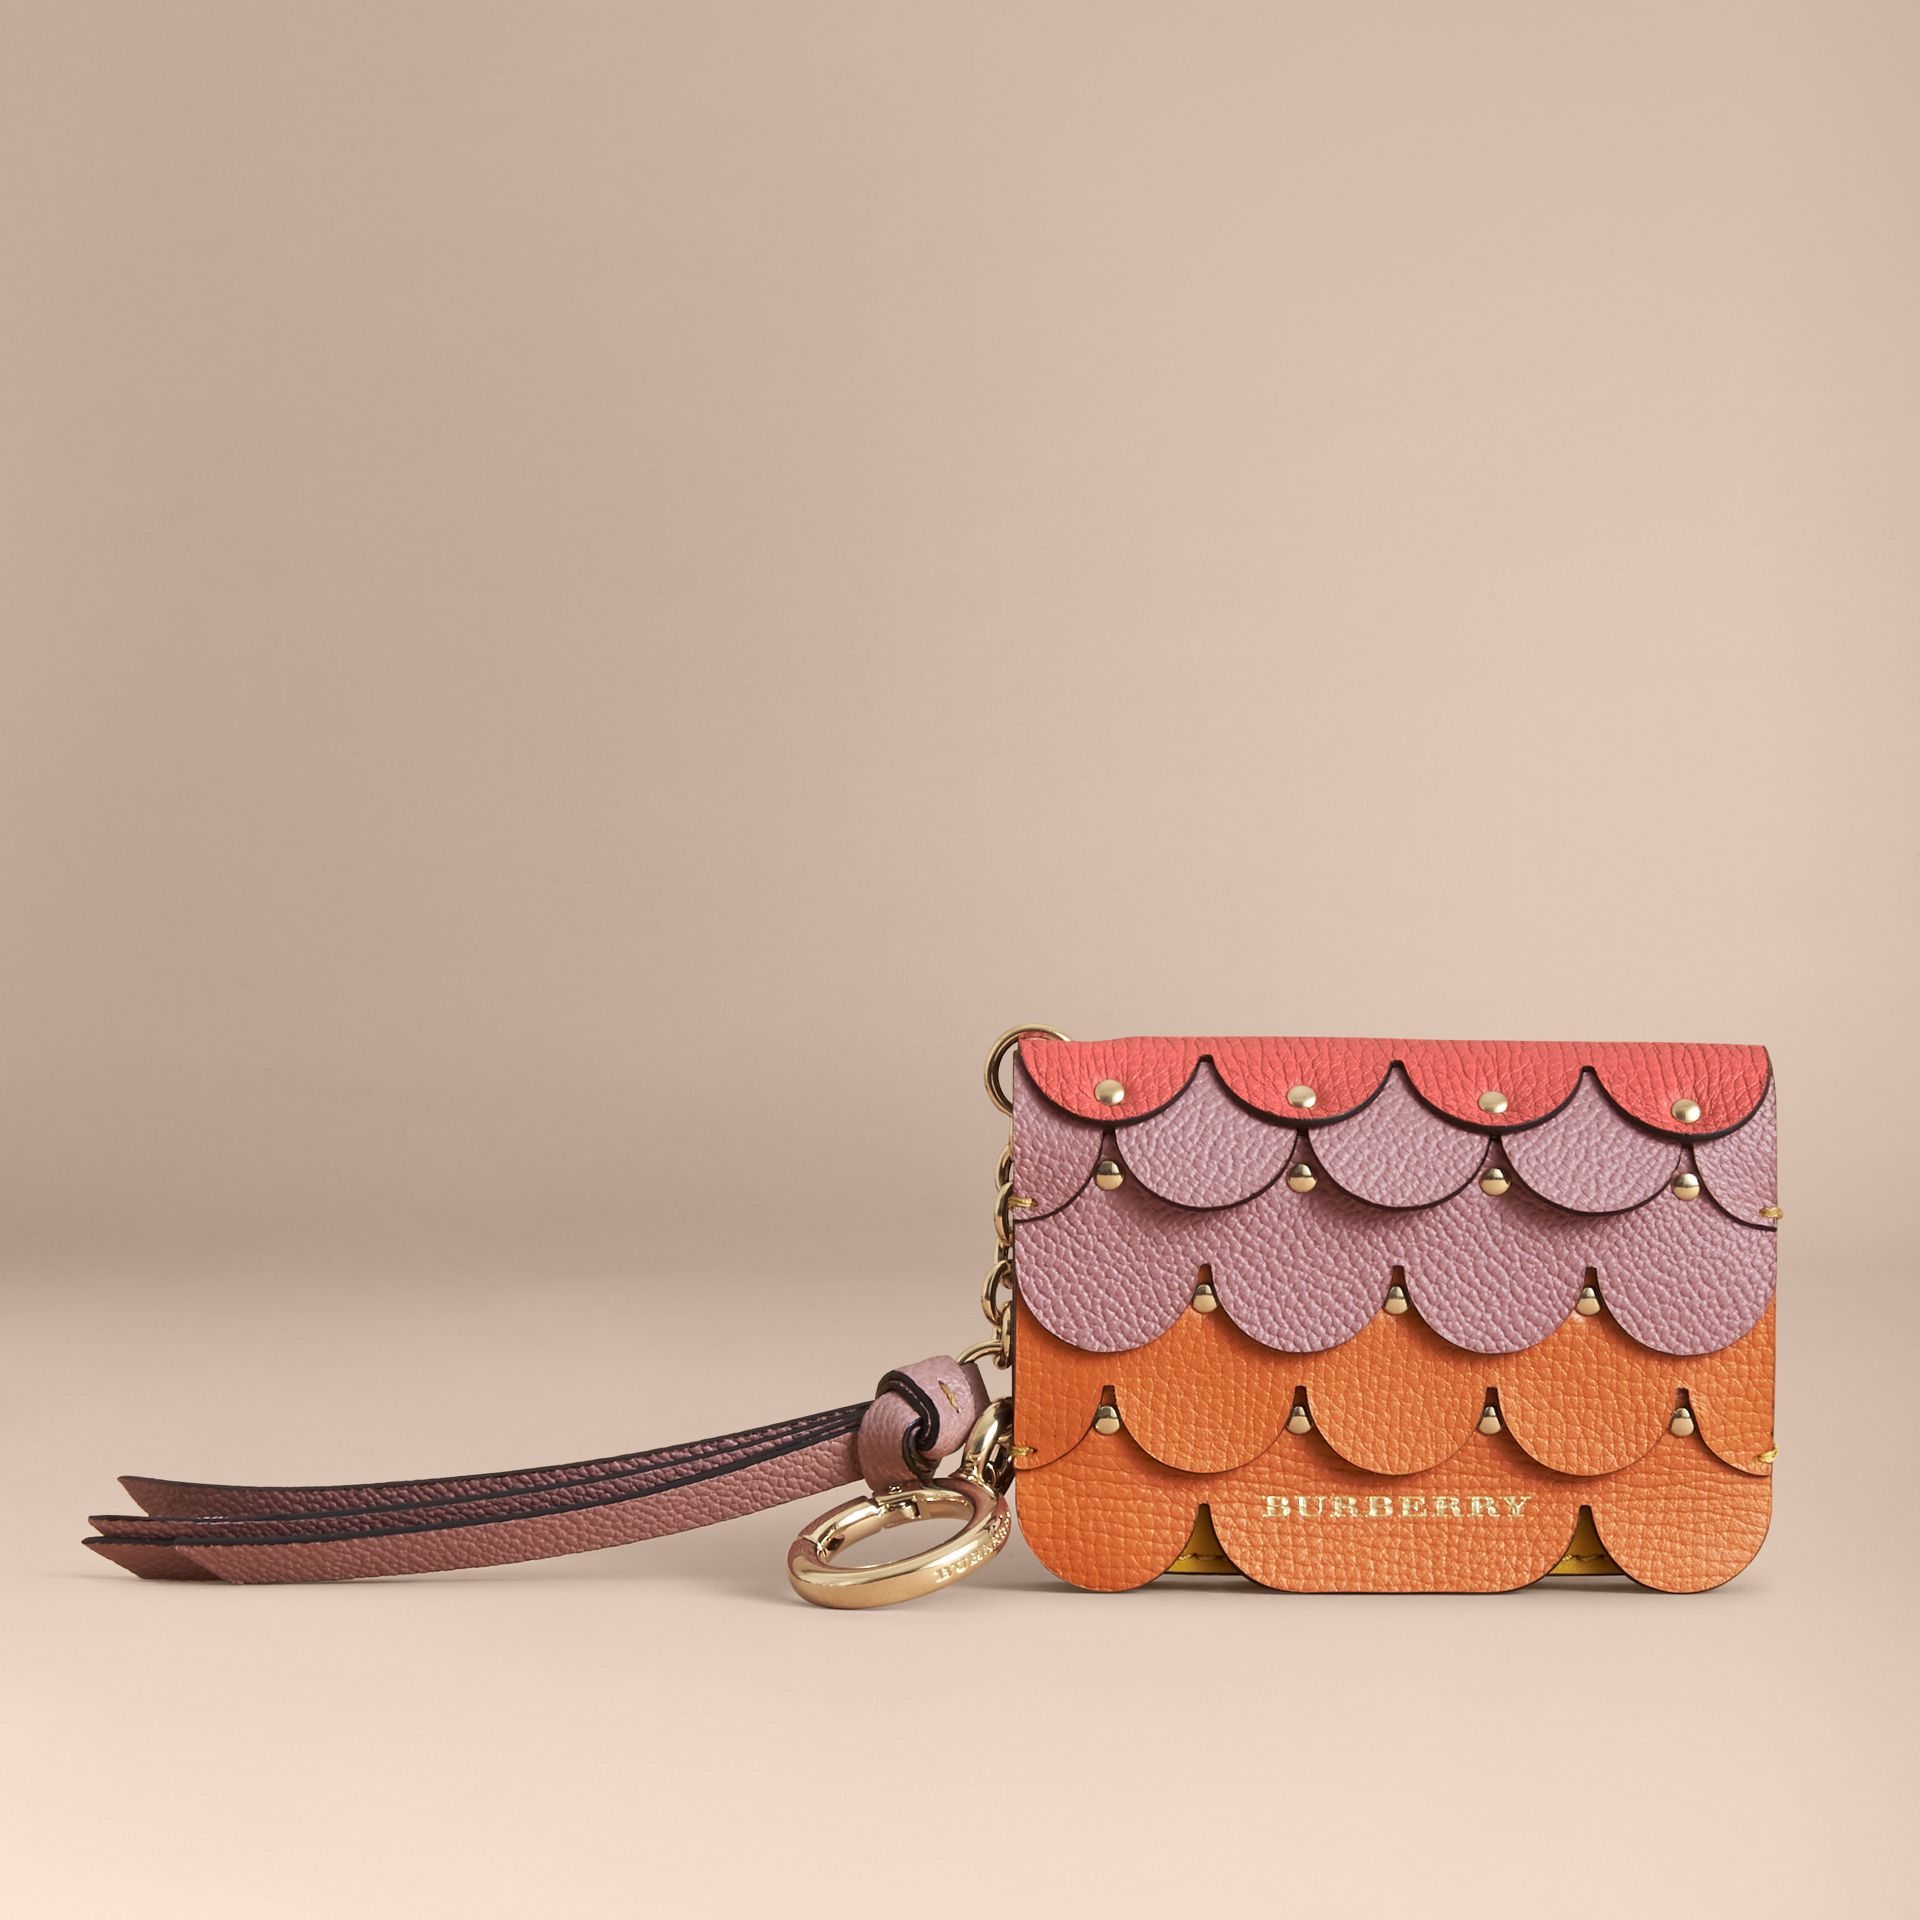 Scalloped Leather Card Case in Bright Straw - Women | Burberry Australia - gallery image 5